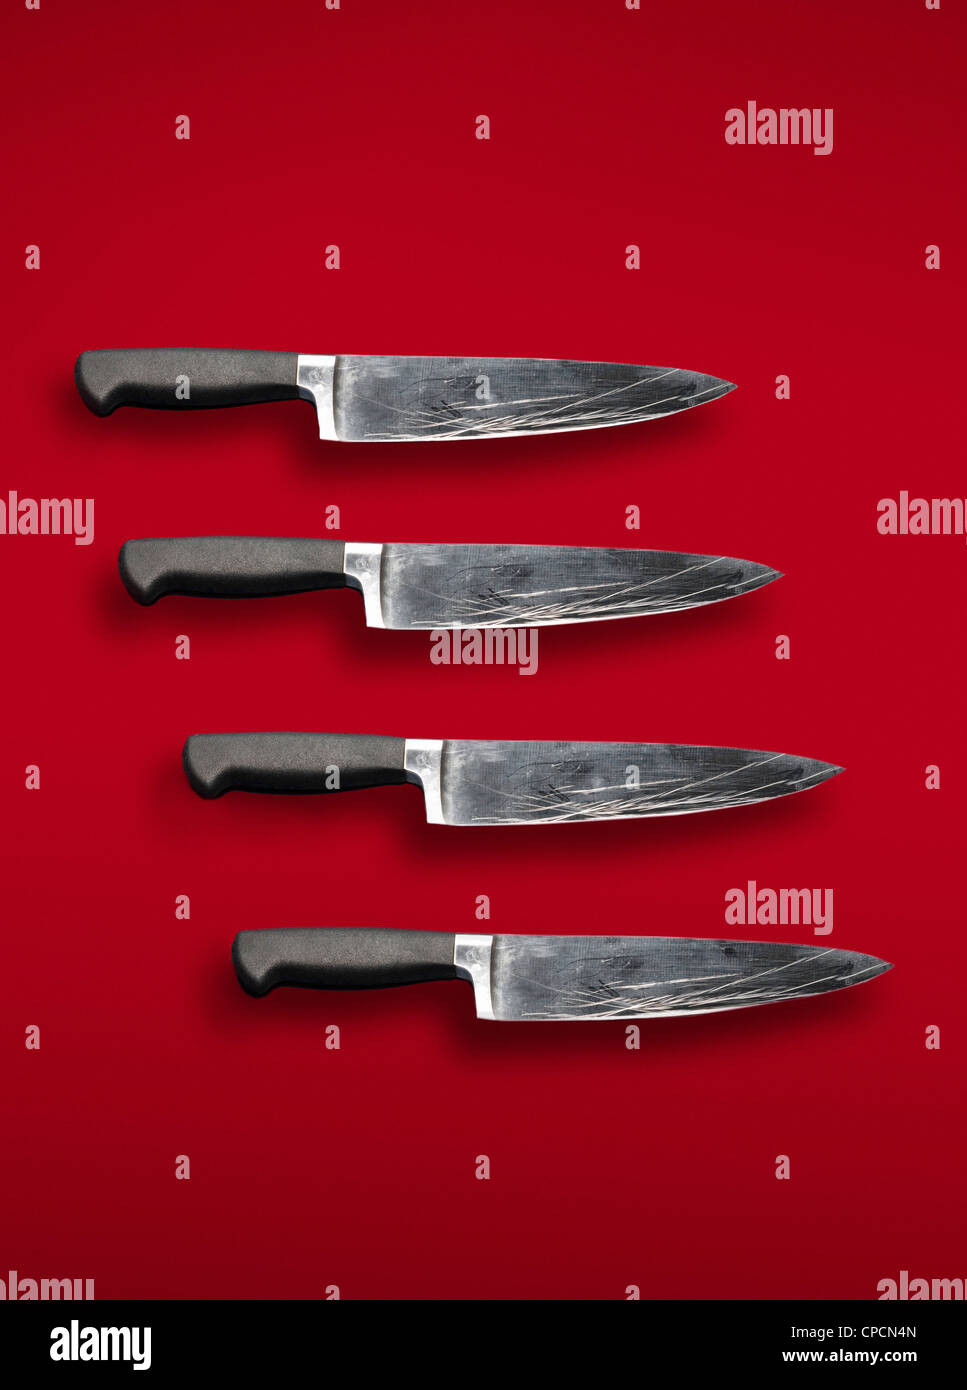 Close up of scratched knives - Stock Image